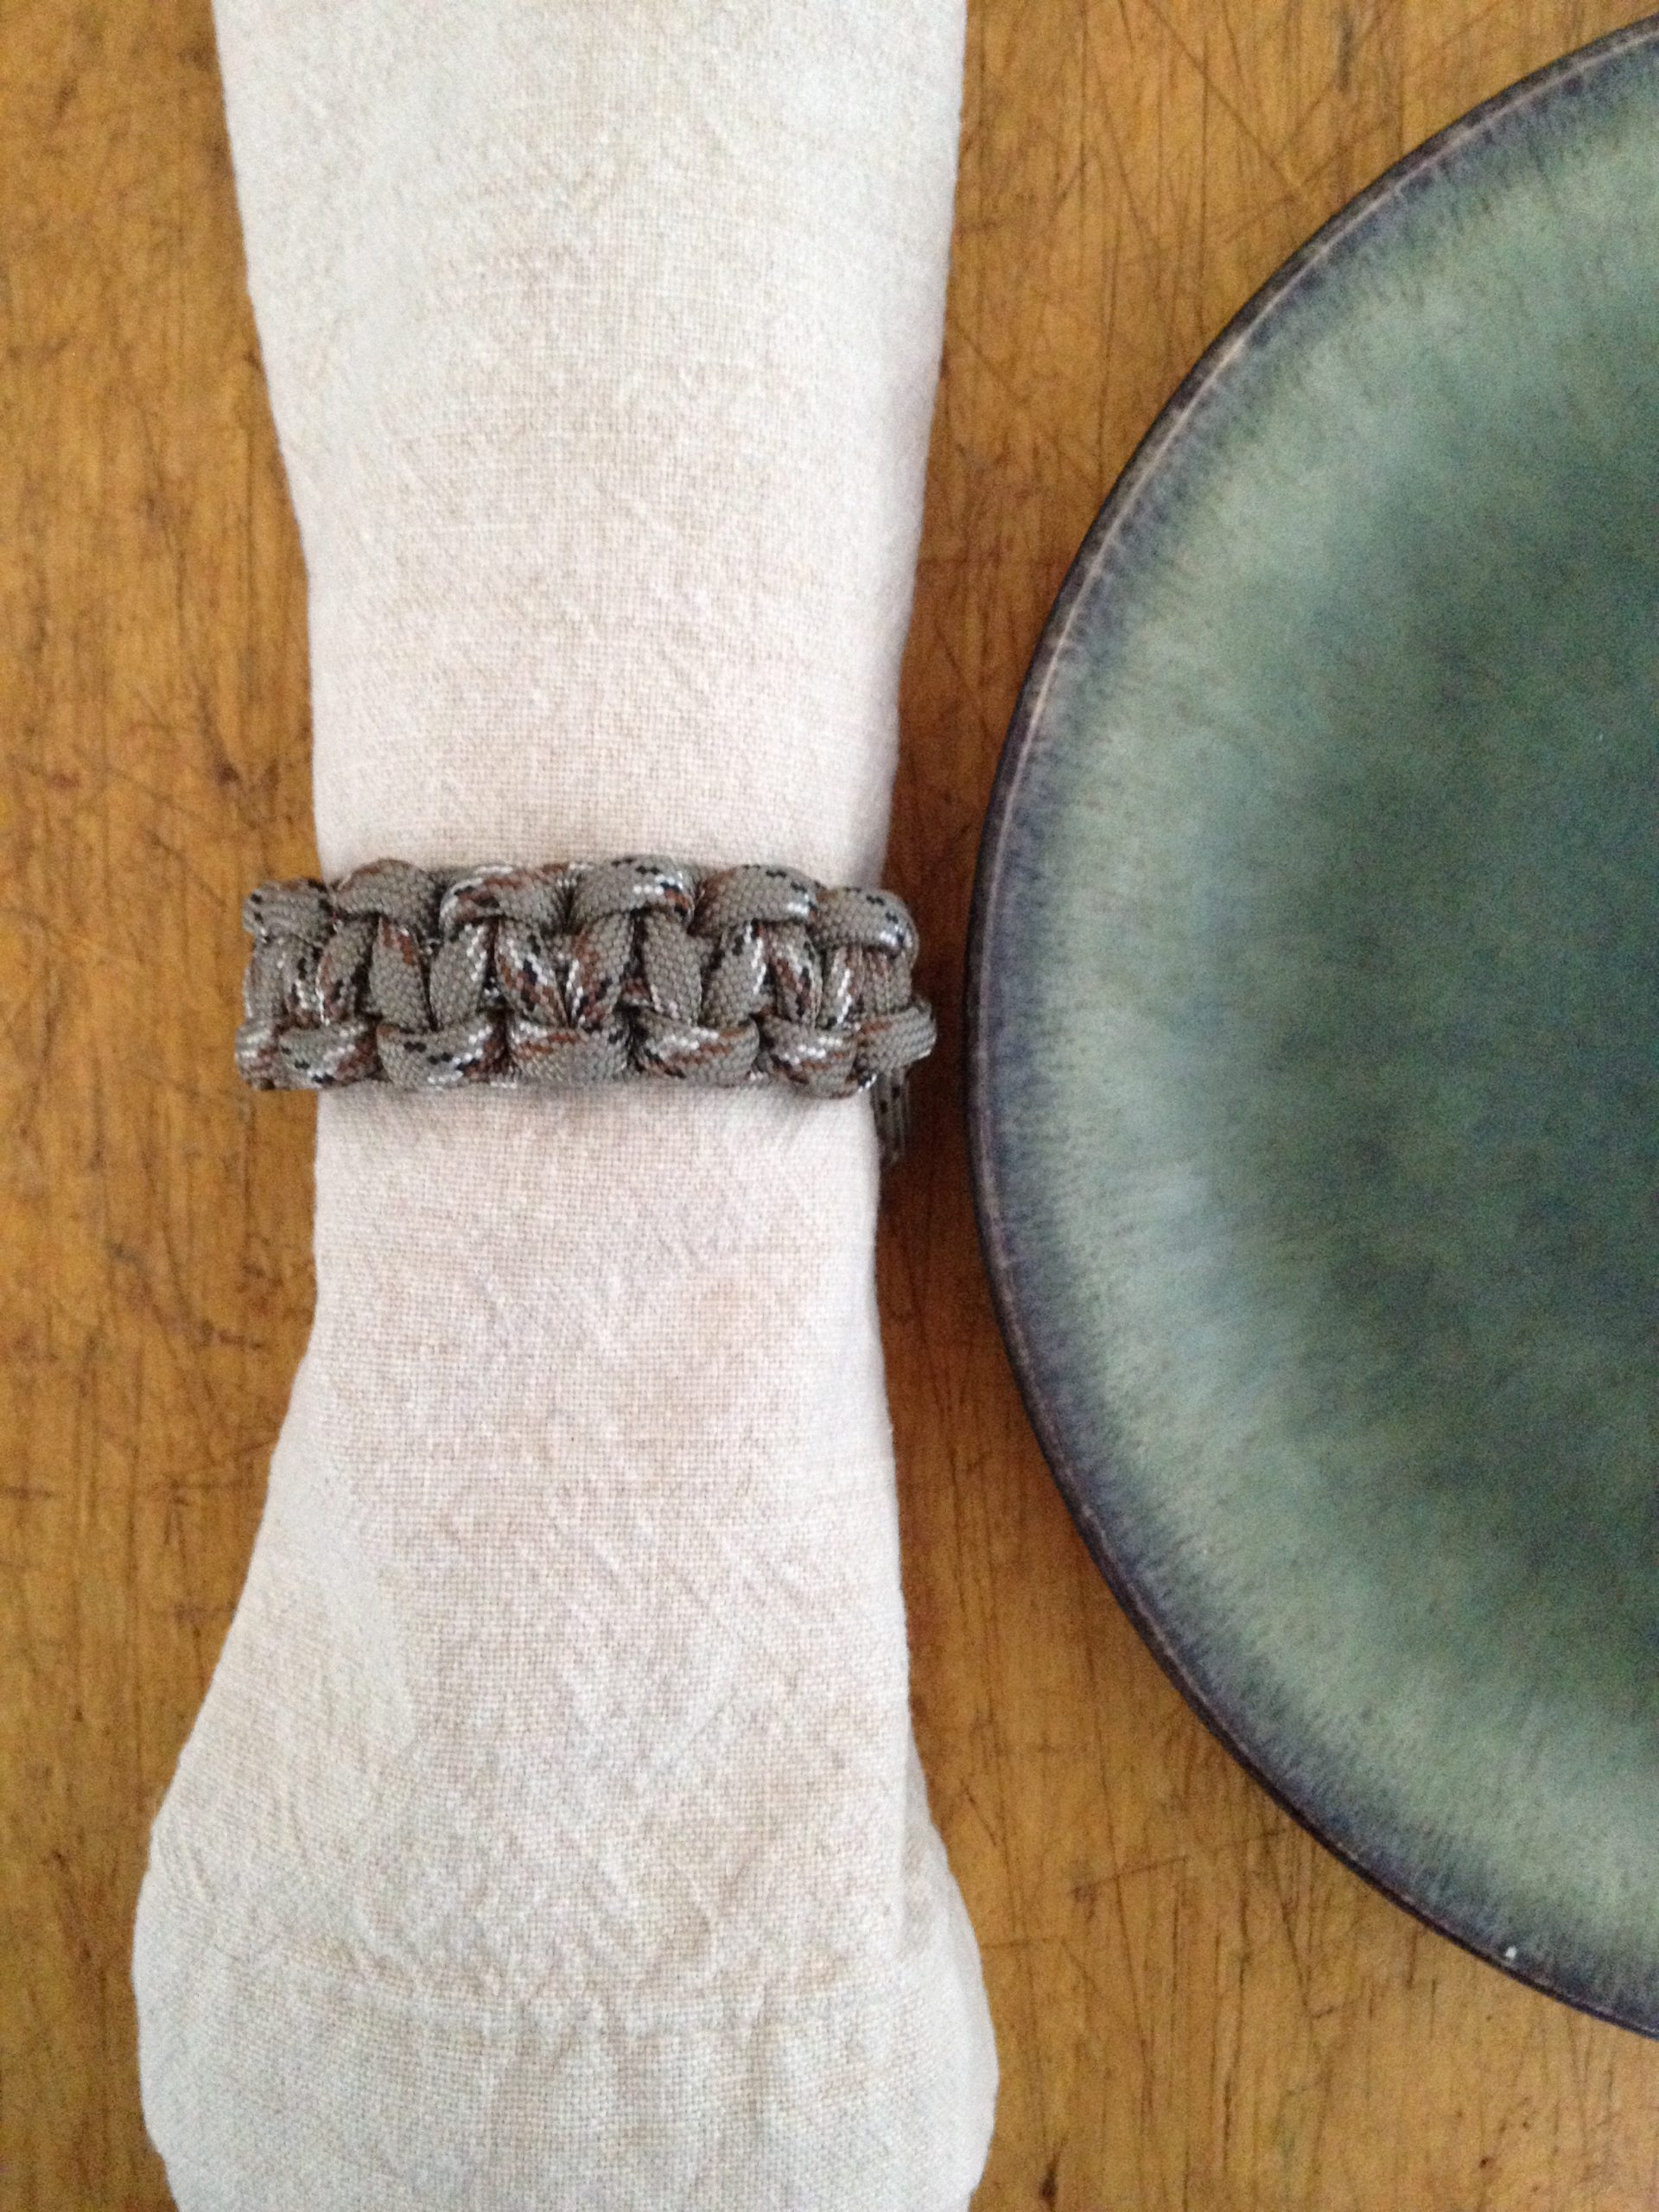 How To Make A Napkin Ring With Paracord